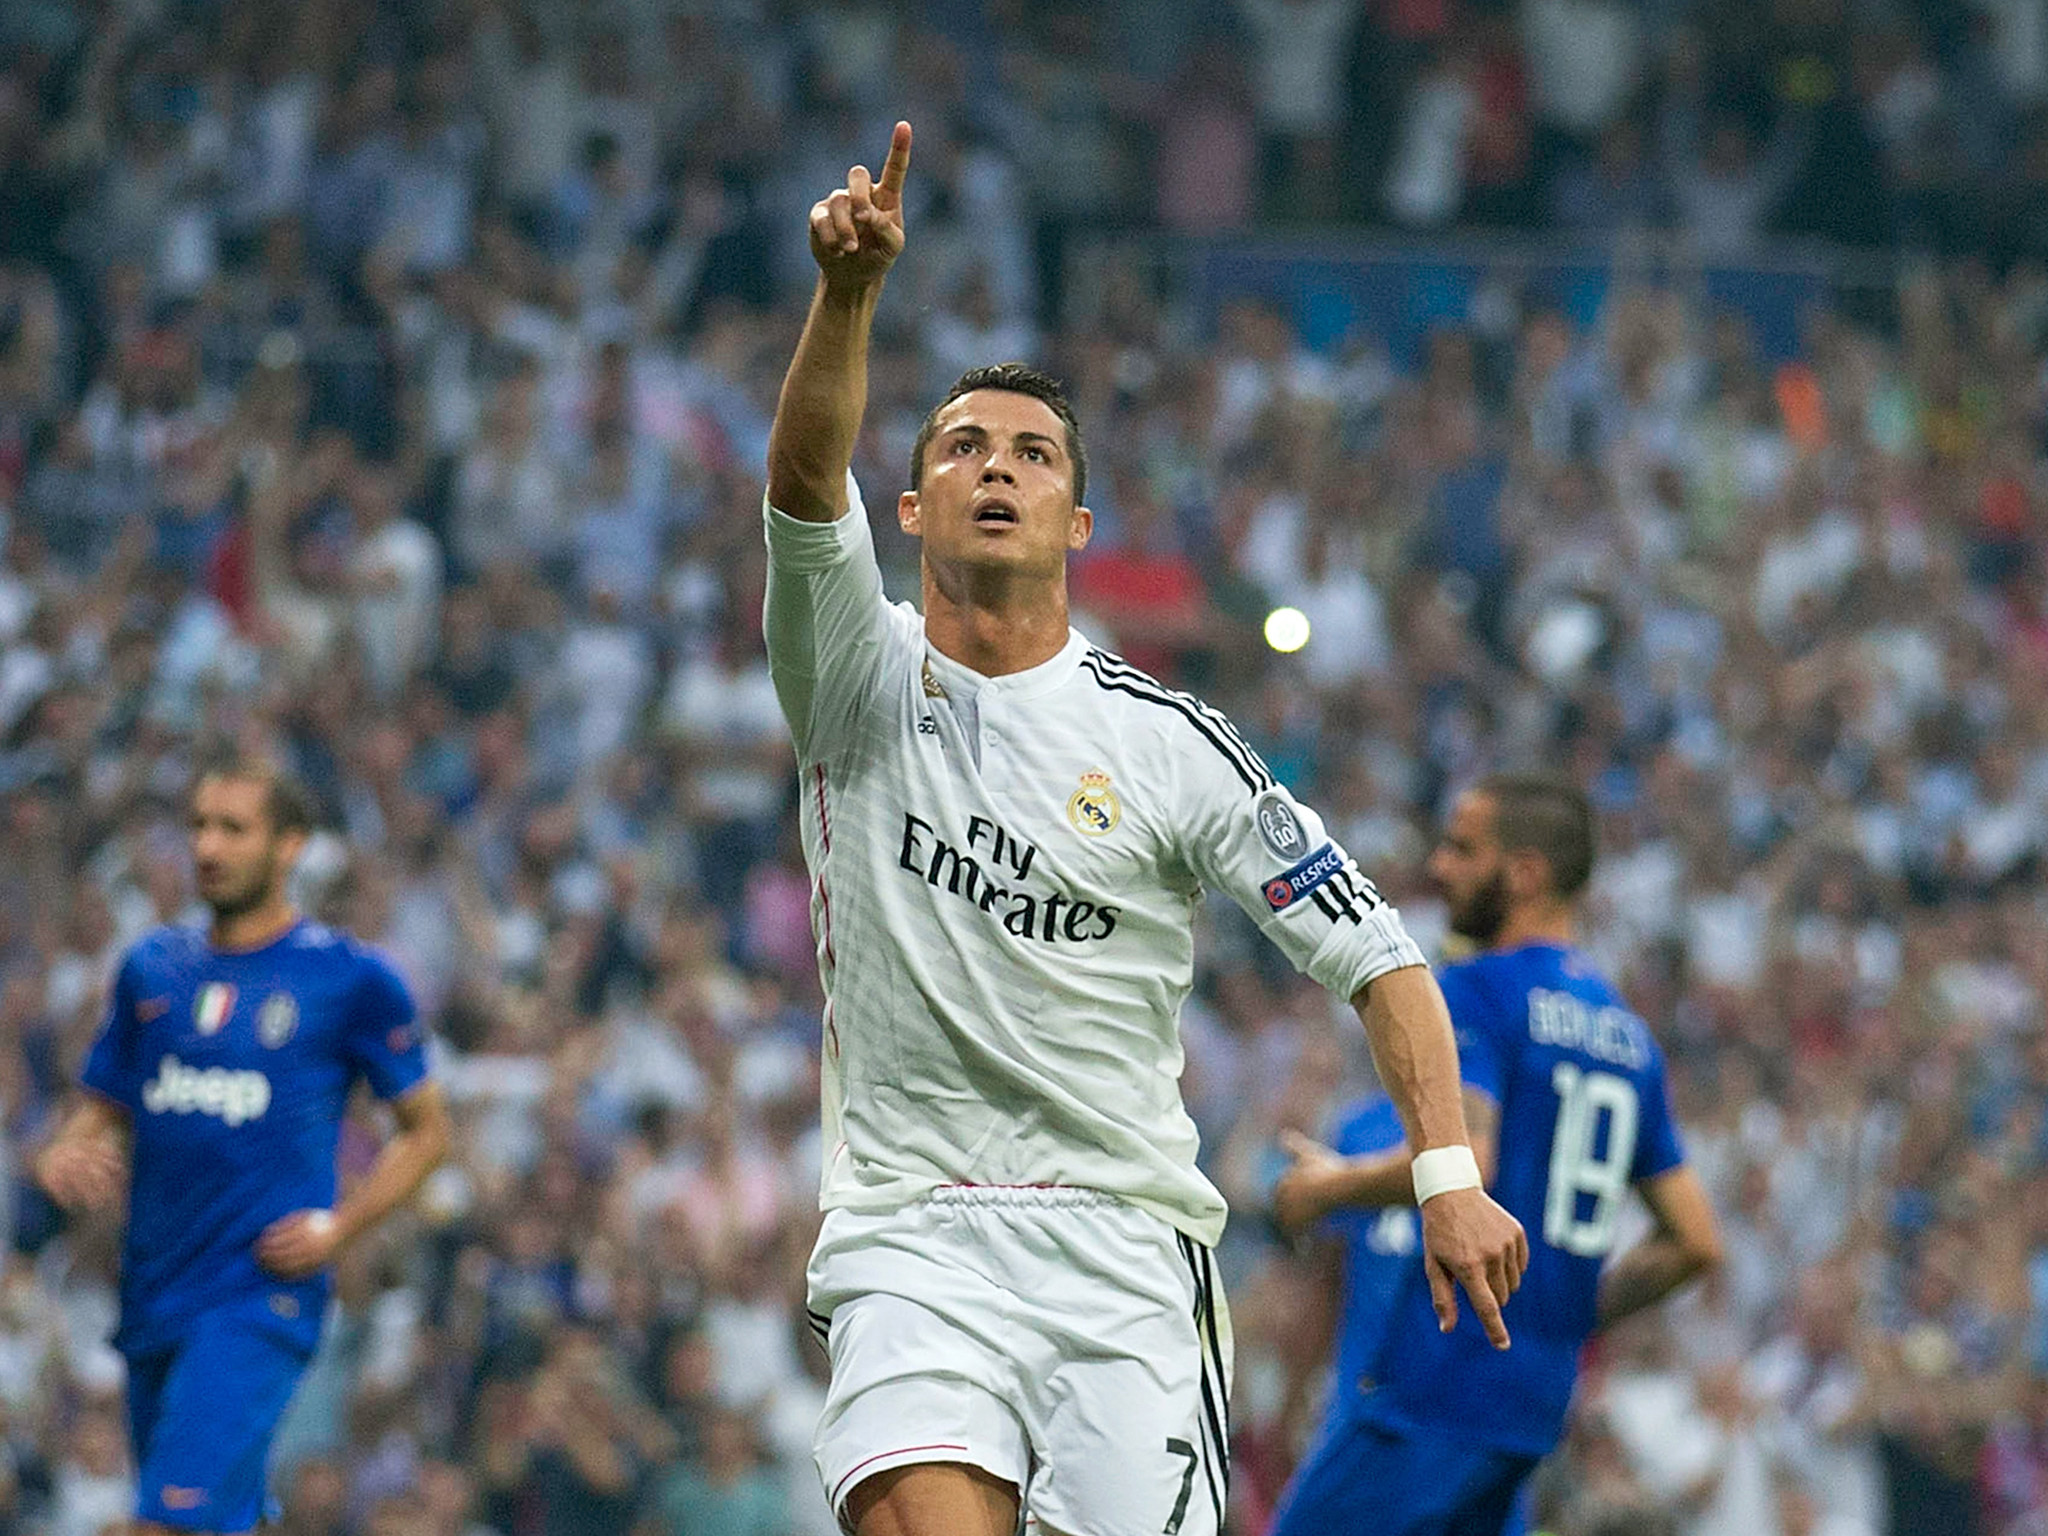 Cristiano Ronaldo to PSG: French club plotting move for Real Madrid star    The Independent